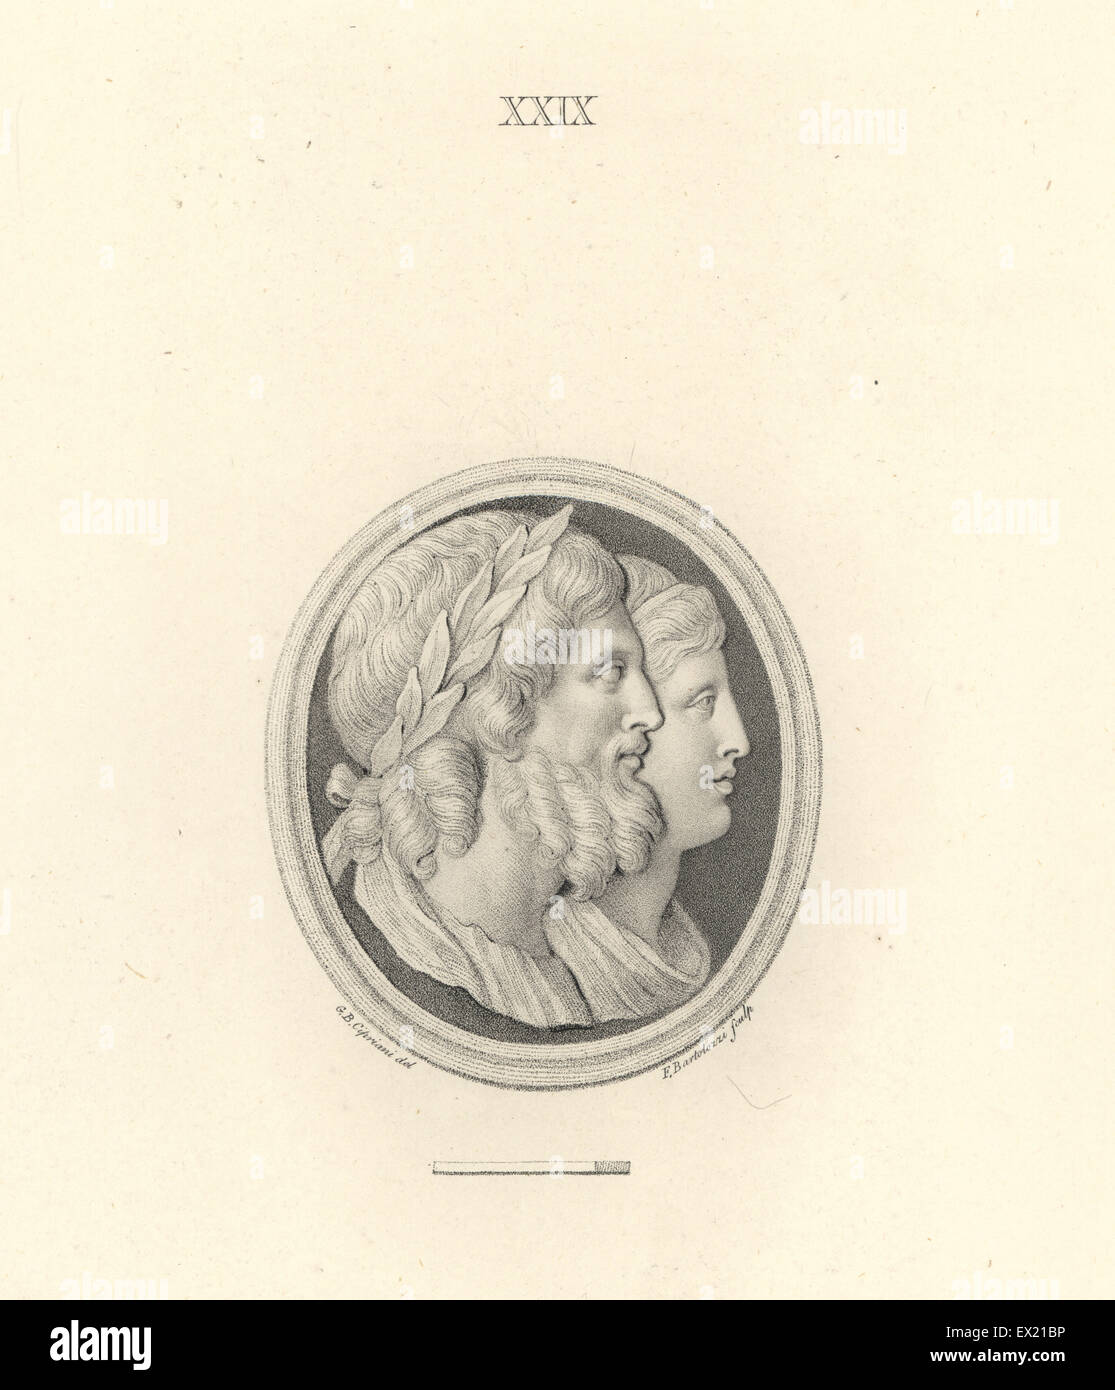 Jupiter and Juno, king and queen of the Roman gods. Copperplate engraving by Francesco Bartolozzi after a design Stock Photo